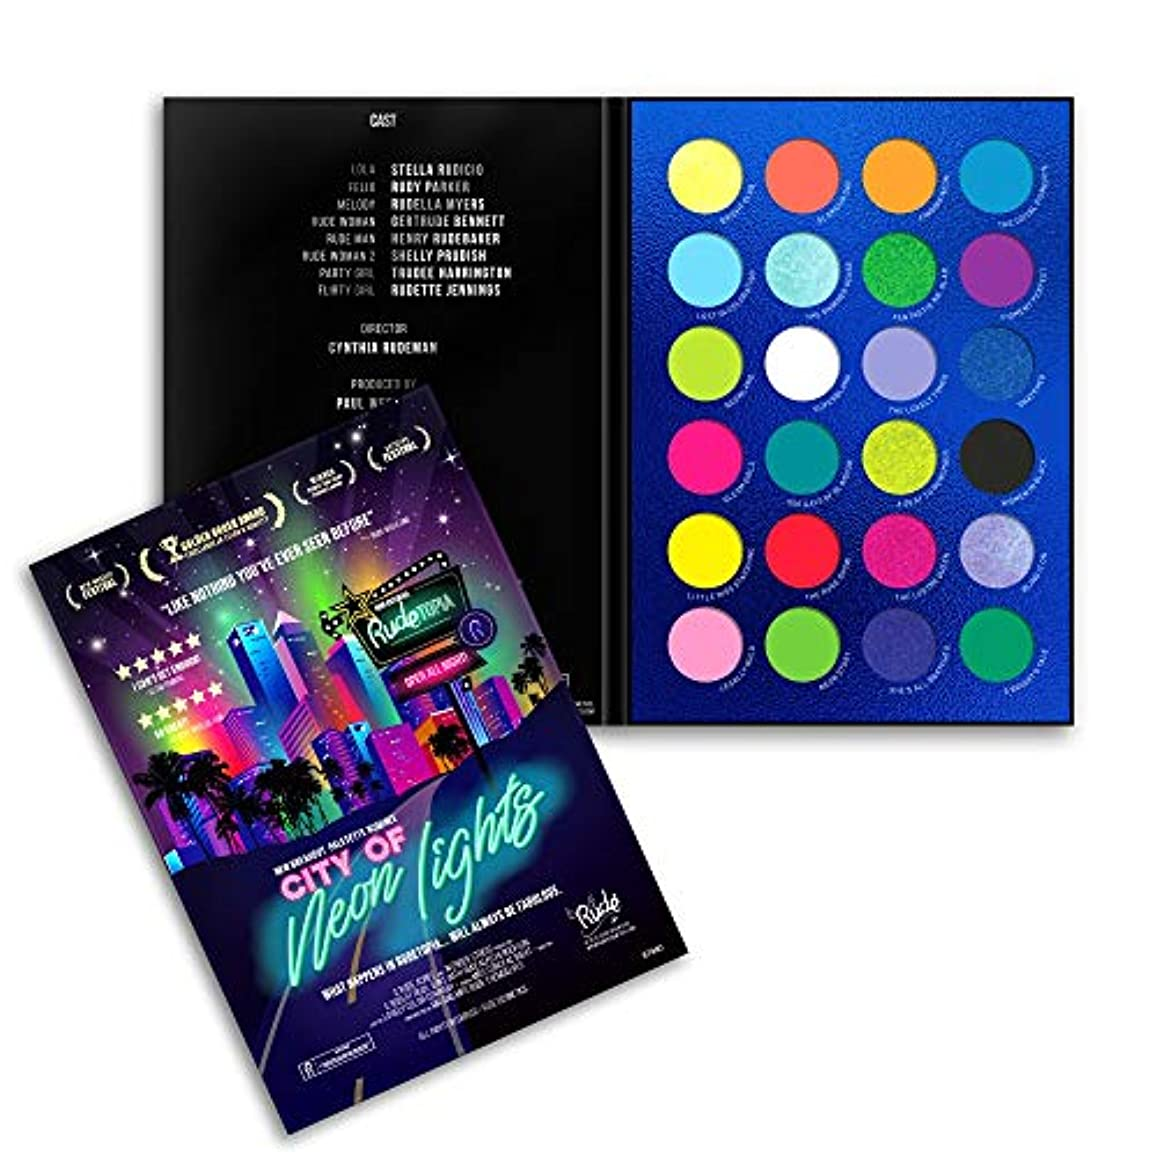 変成器スーツ植物学RUDE City of Neon Lights - 24 Vibrant Pigment & Eyeshadow Palette (並行輸入品)